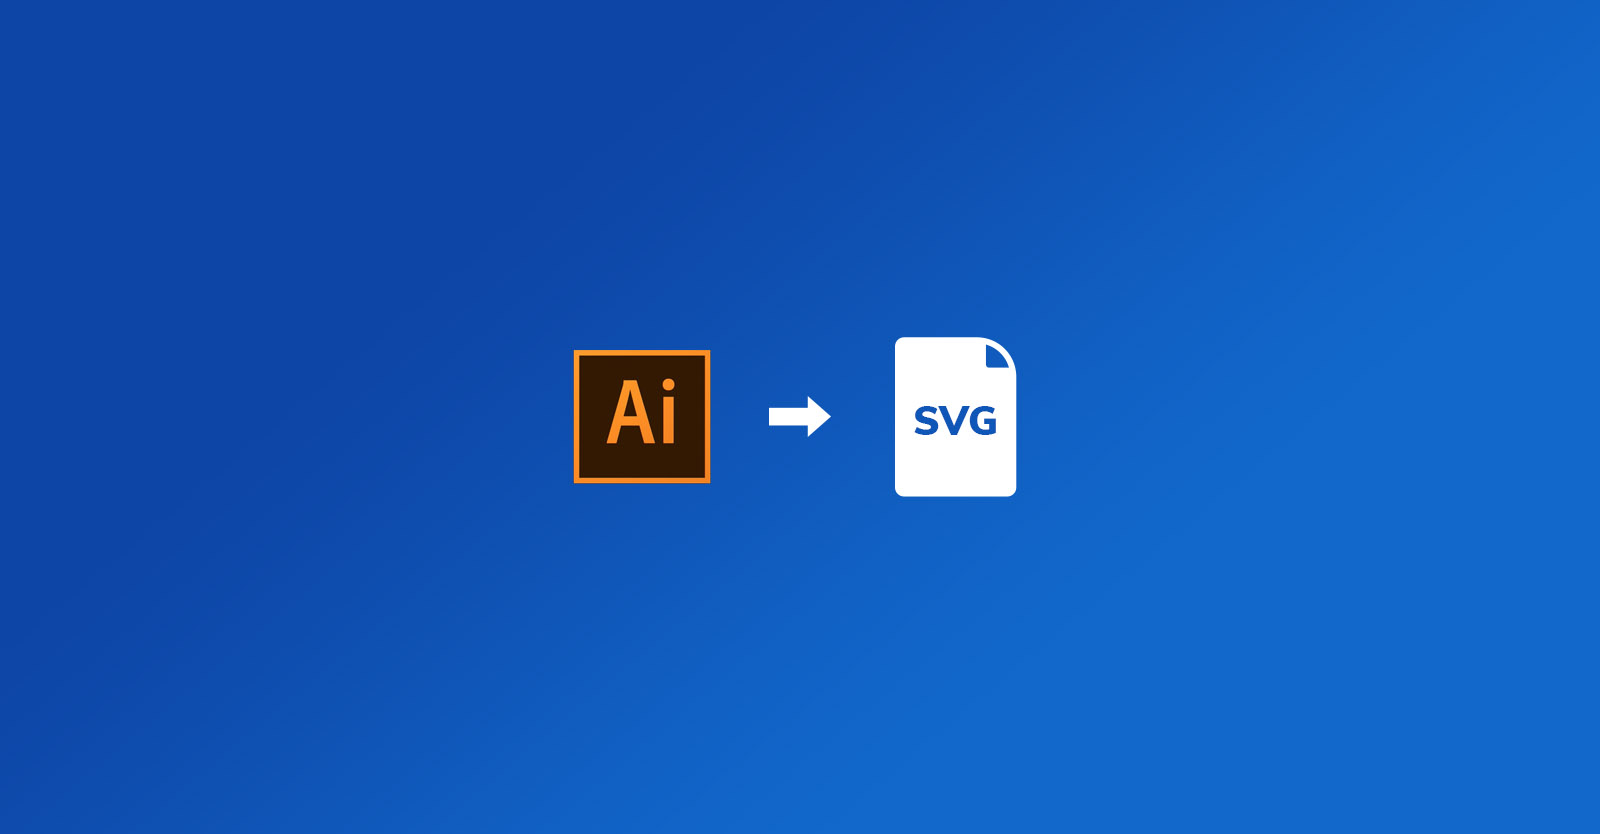 How to export an SVG file from Illustrator